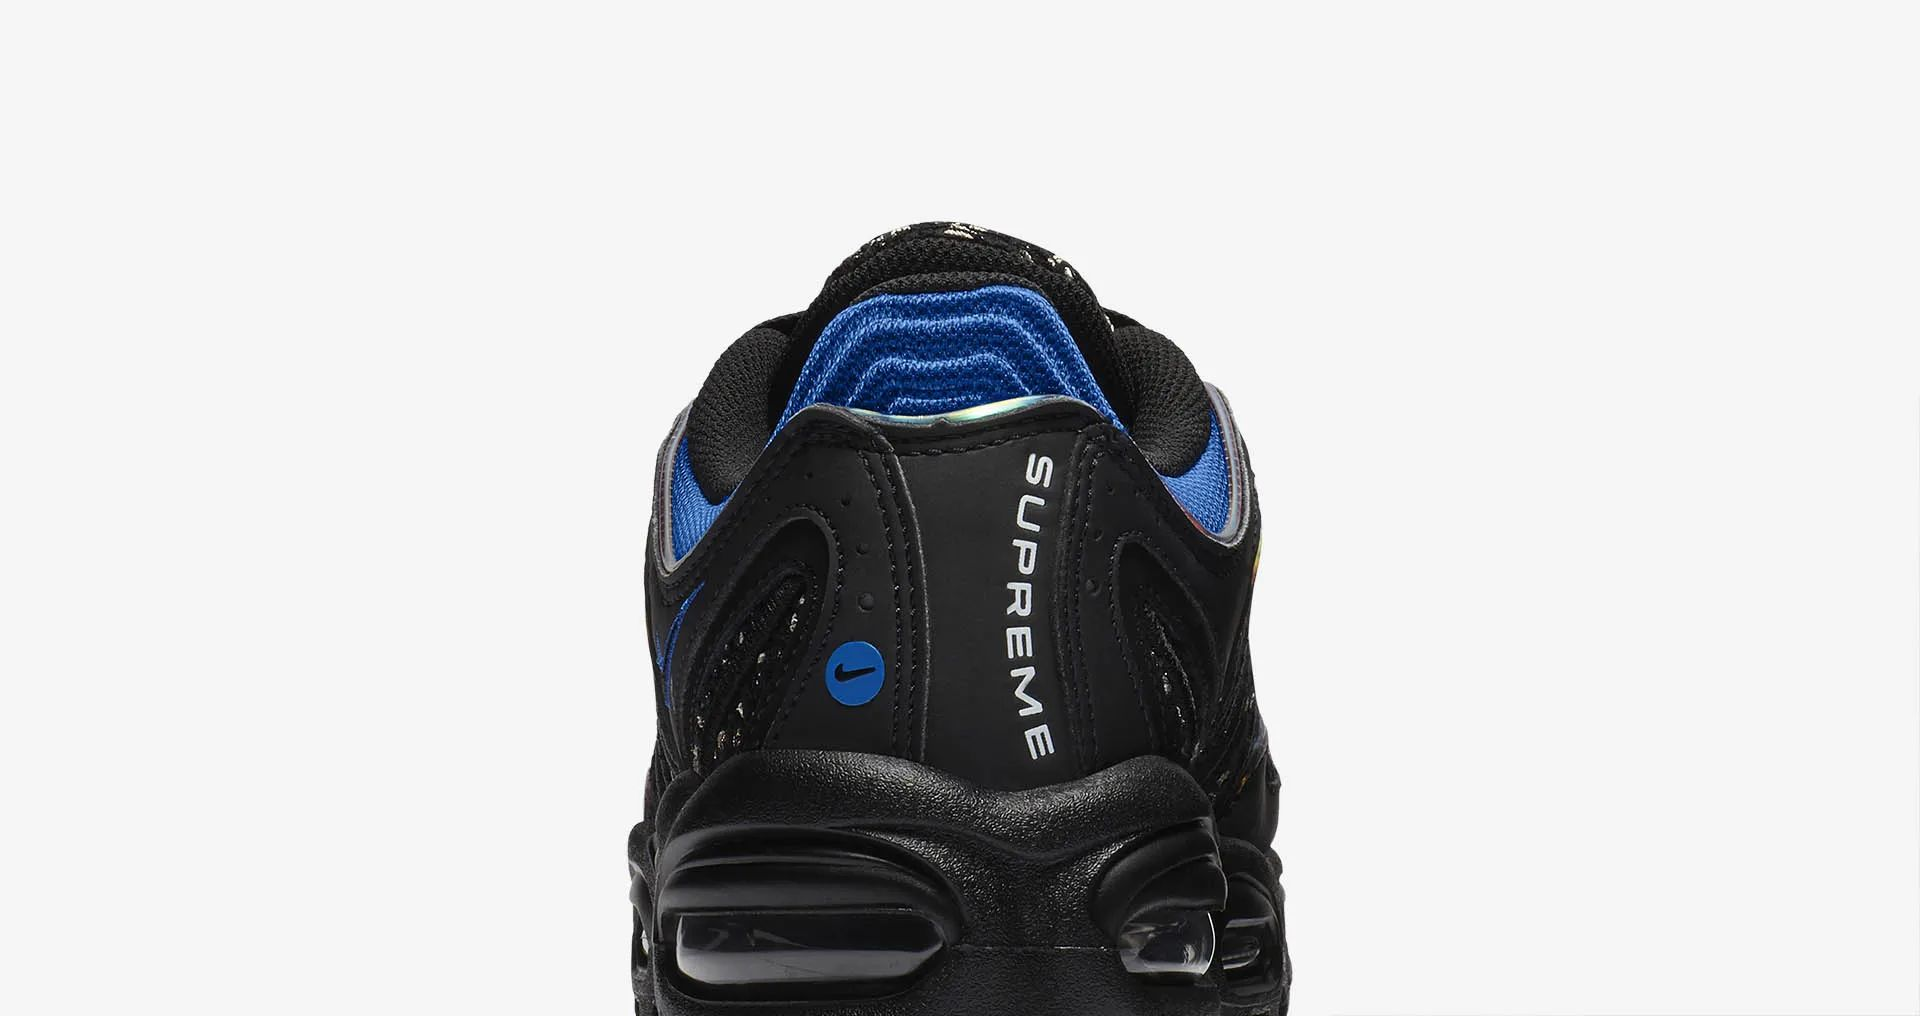 supreme-nike-air-max-tailwind-4-19ss-release-20190325-snkrs